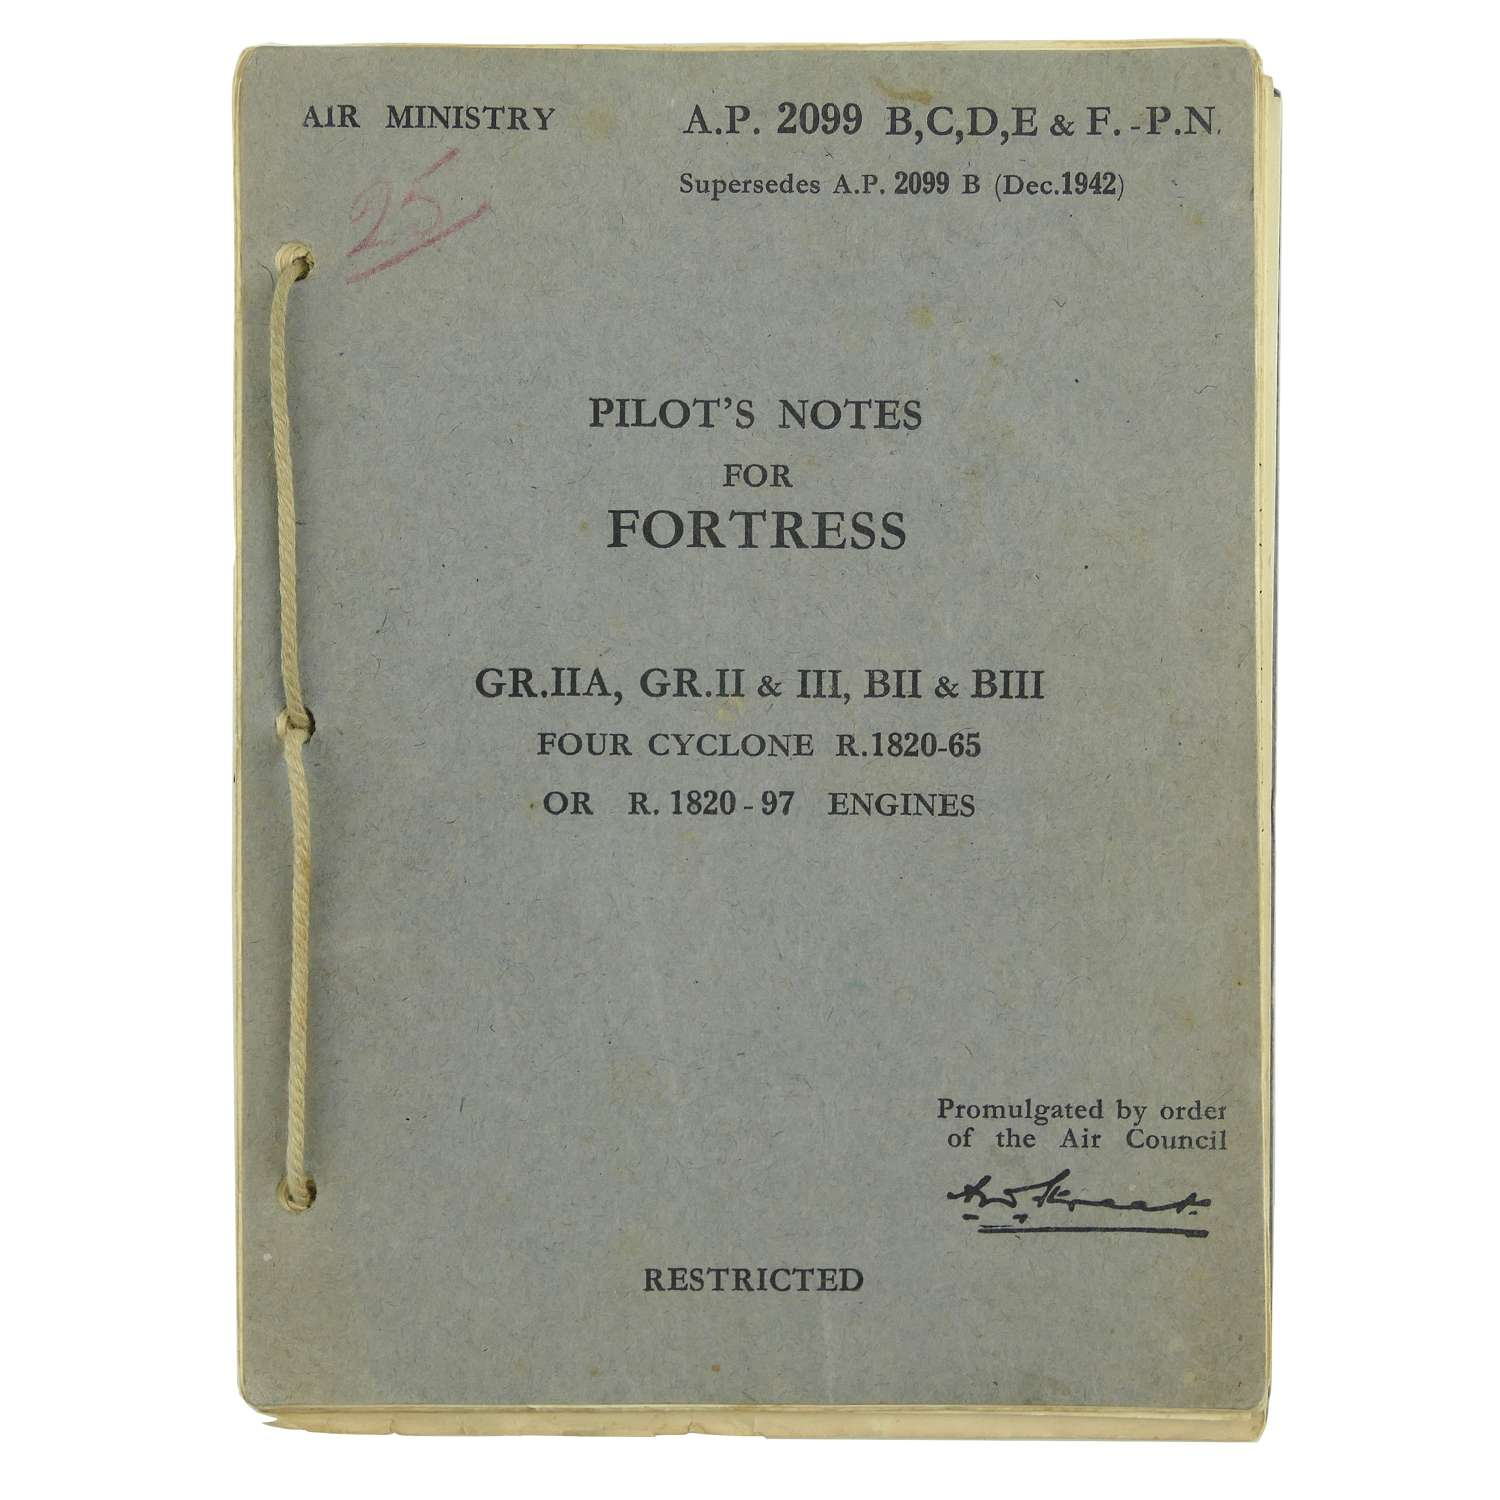 Air Ministry Pilot's Notes - Flying Fortress